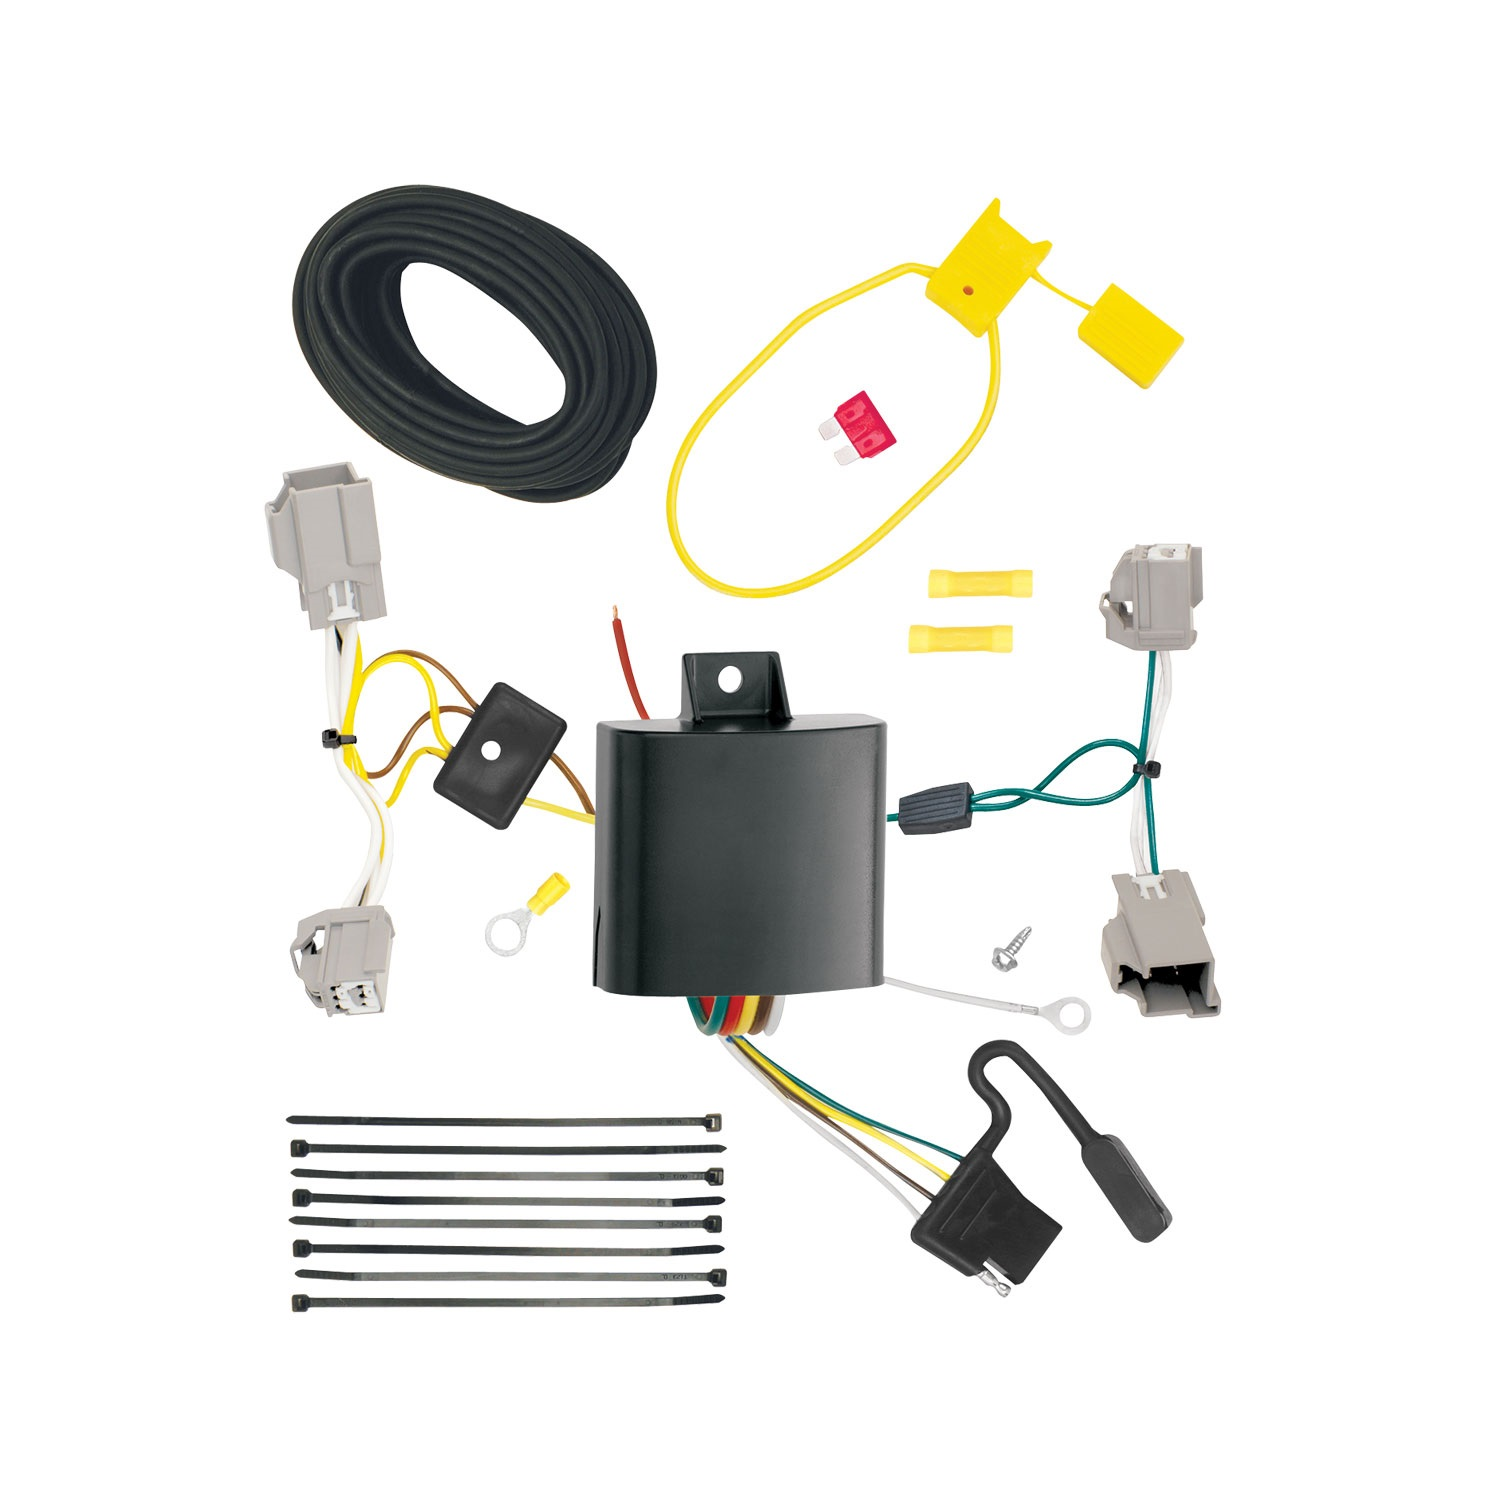 14-C Impala T-One with Upgraded Circuit Protected Modulite Replacement Auto Part, Easy to Install